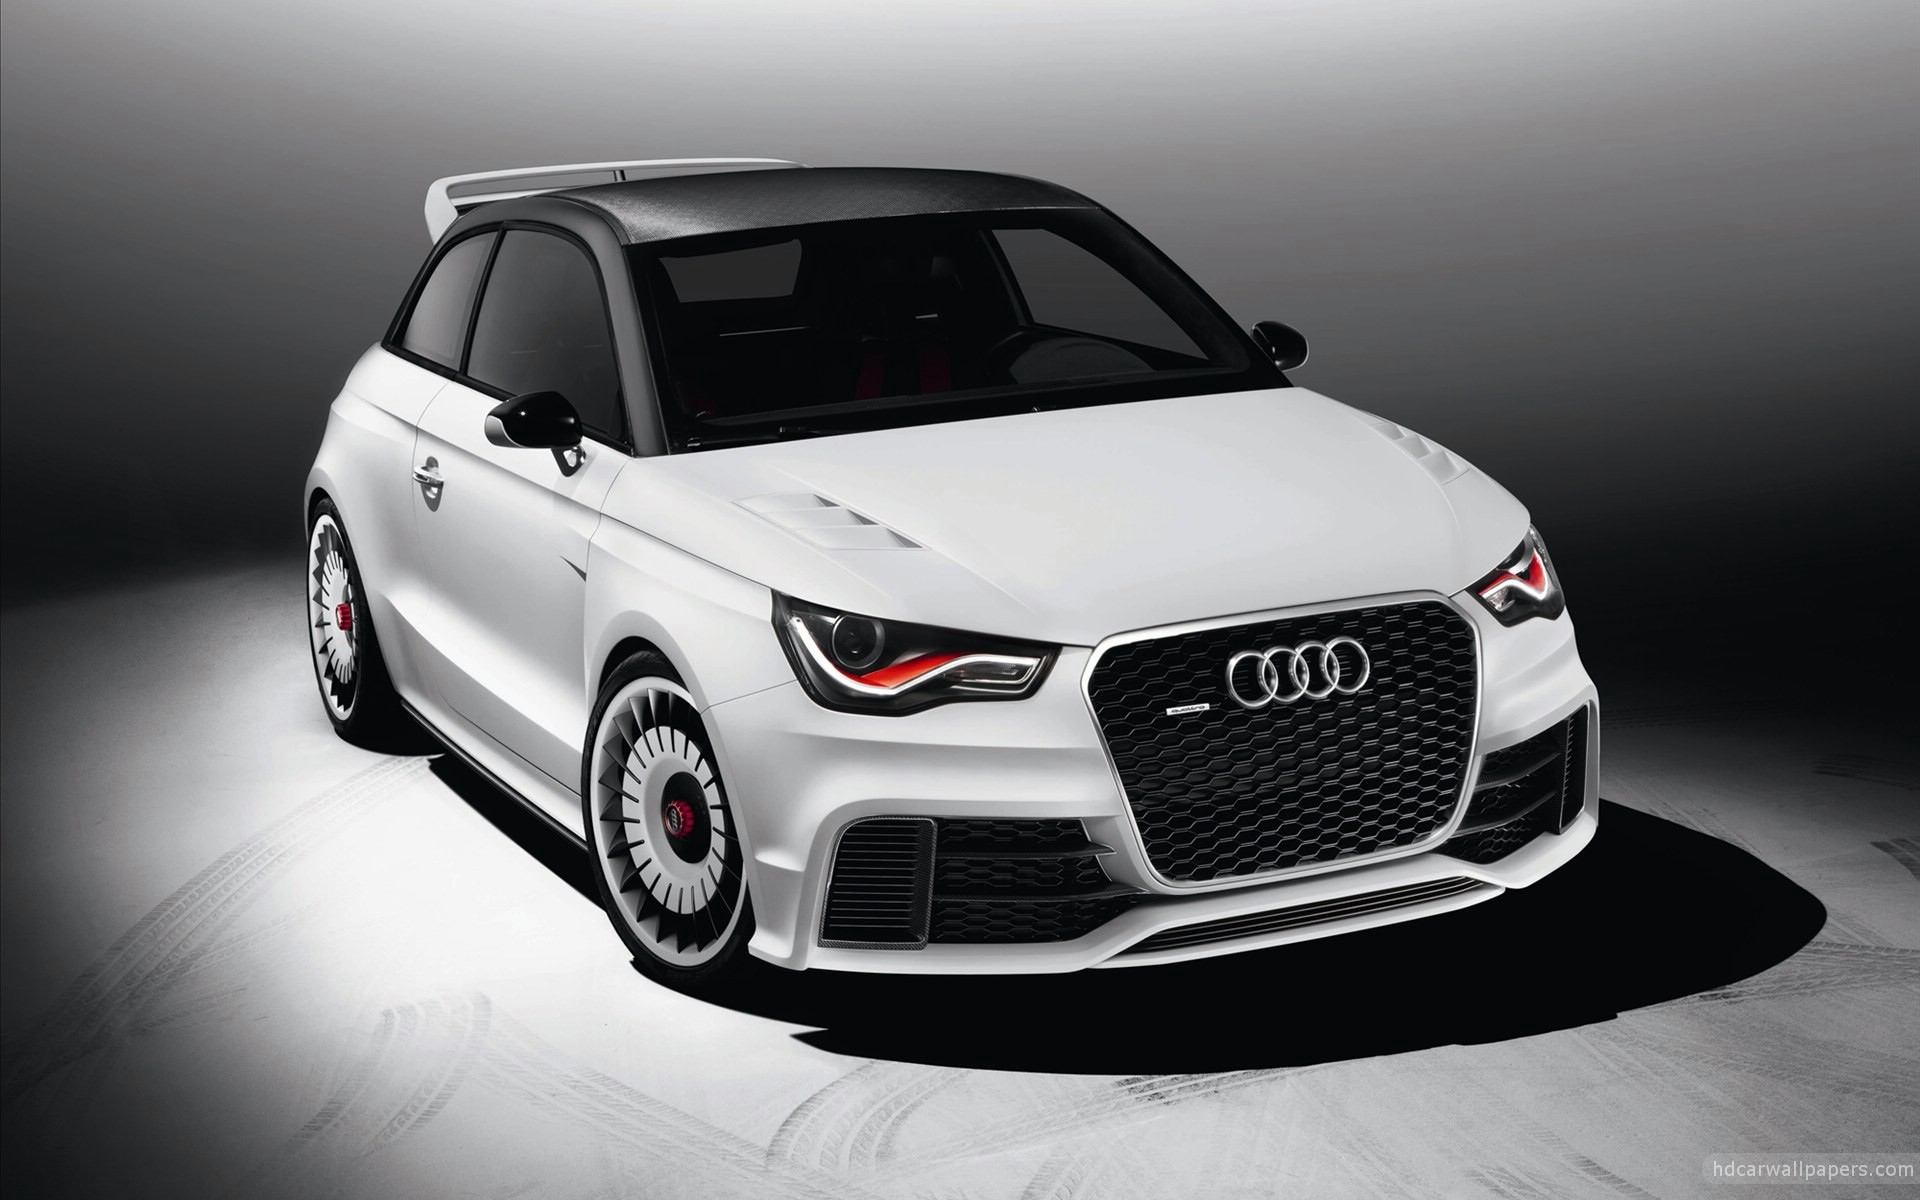 2011 audi a1 clubsport quattro 3 wallpaper hd car wallpapers id 2062. Black Bedroom Furniture Sets. Home Design Ideas